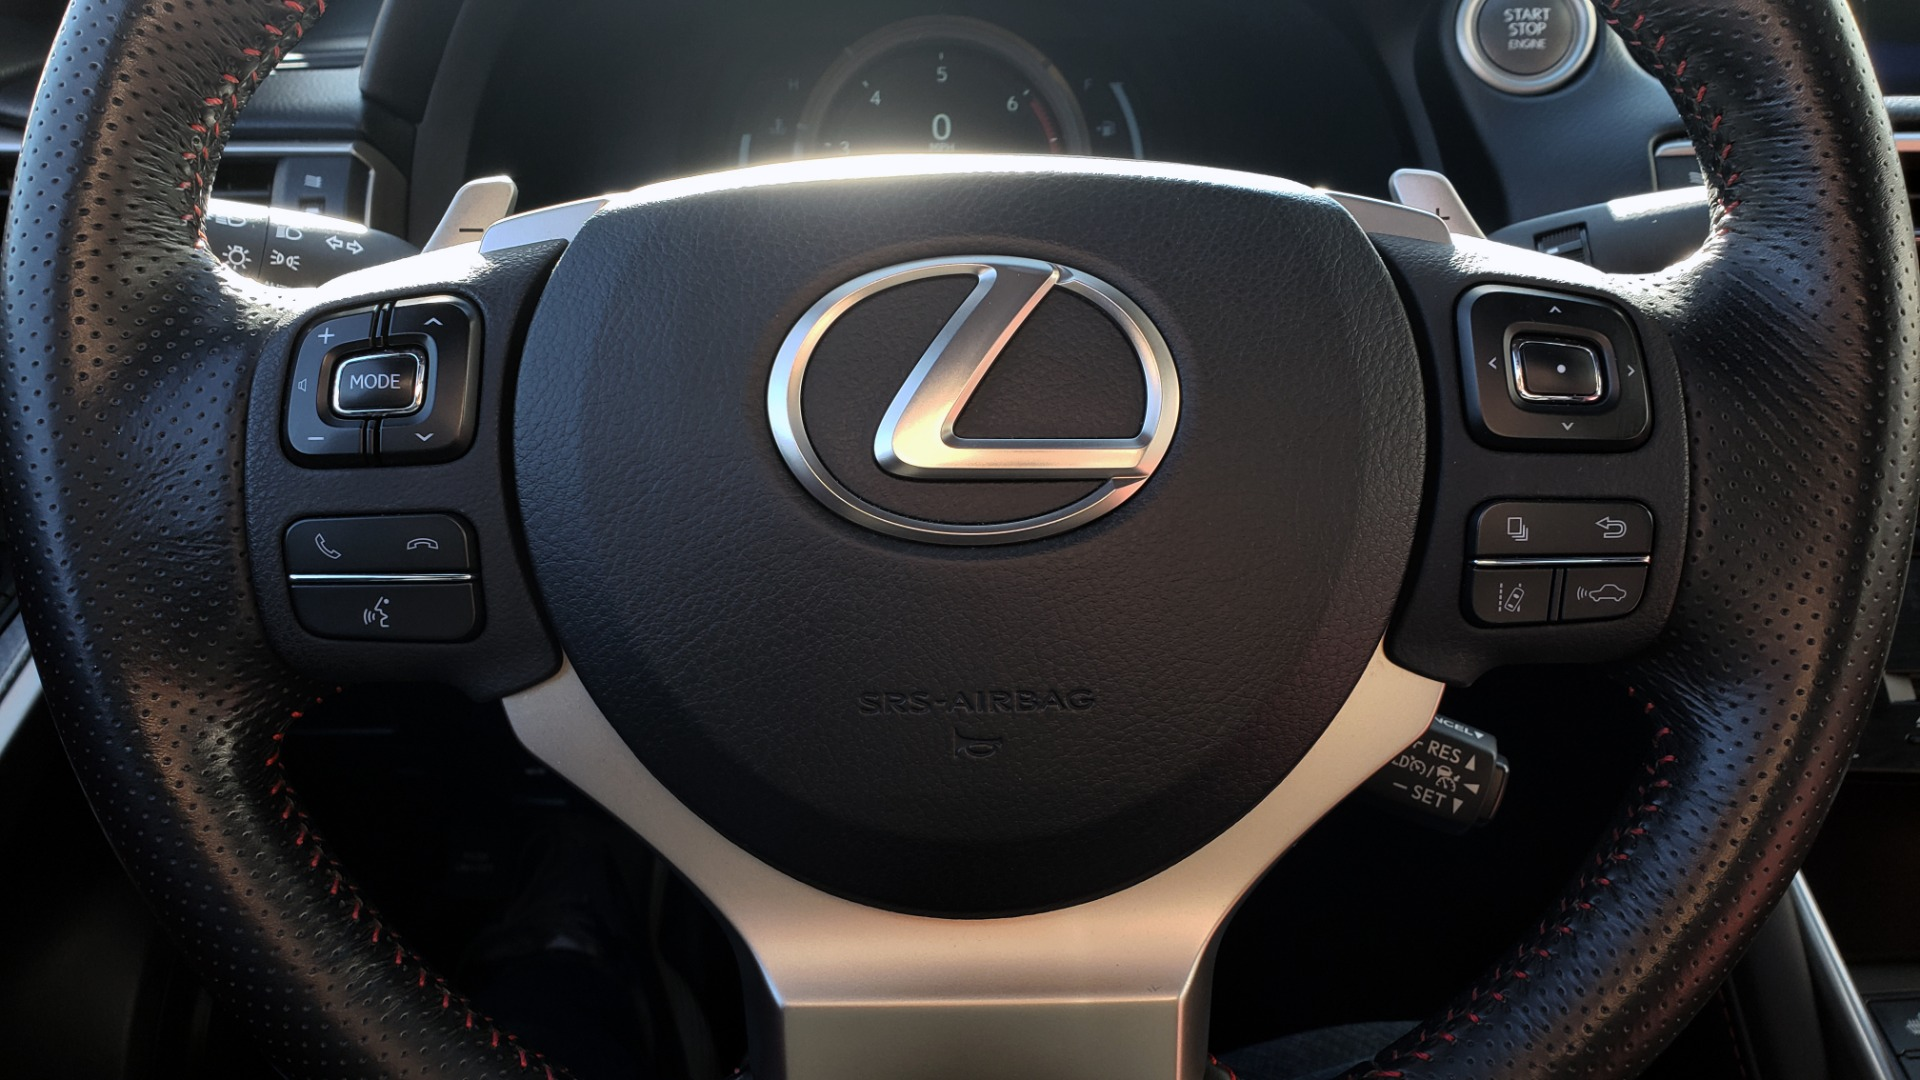 Used 2018 Lexus IS 300 F-SPORT / BSM / SUNROOF / REARVIEW / 18IN WHEELS for sale Sold at Formula Imports in Charlotte NC 28227 35